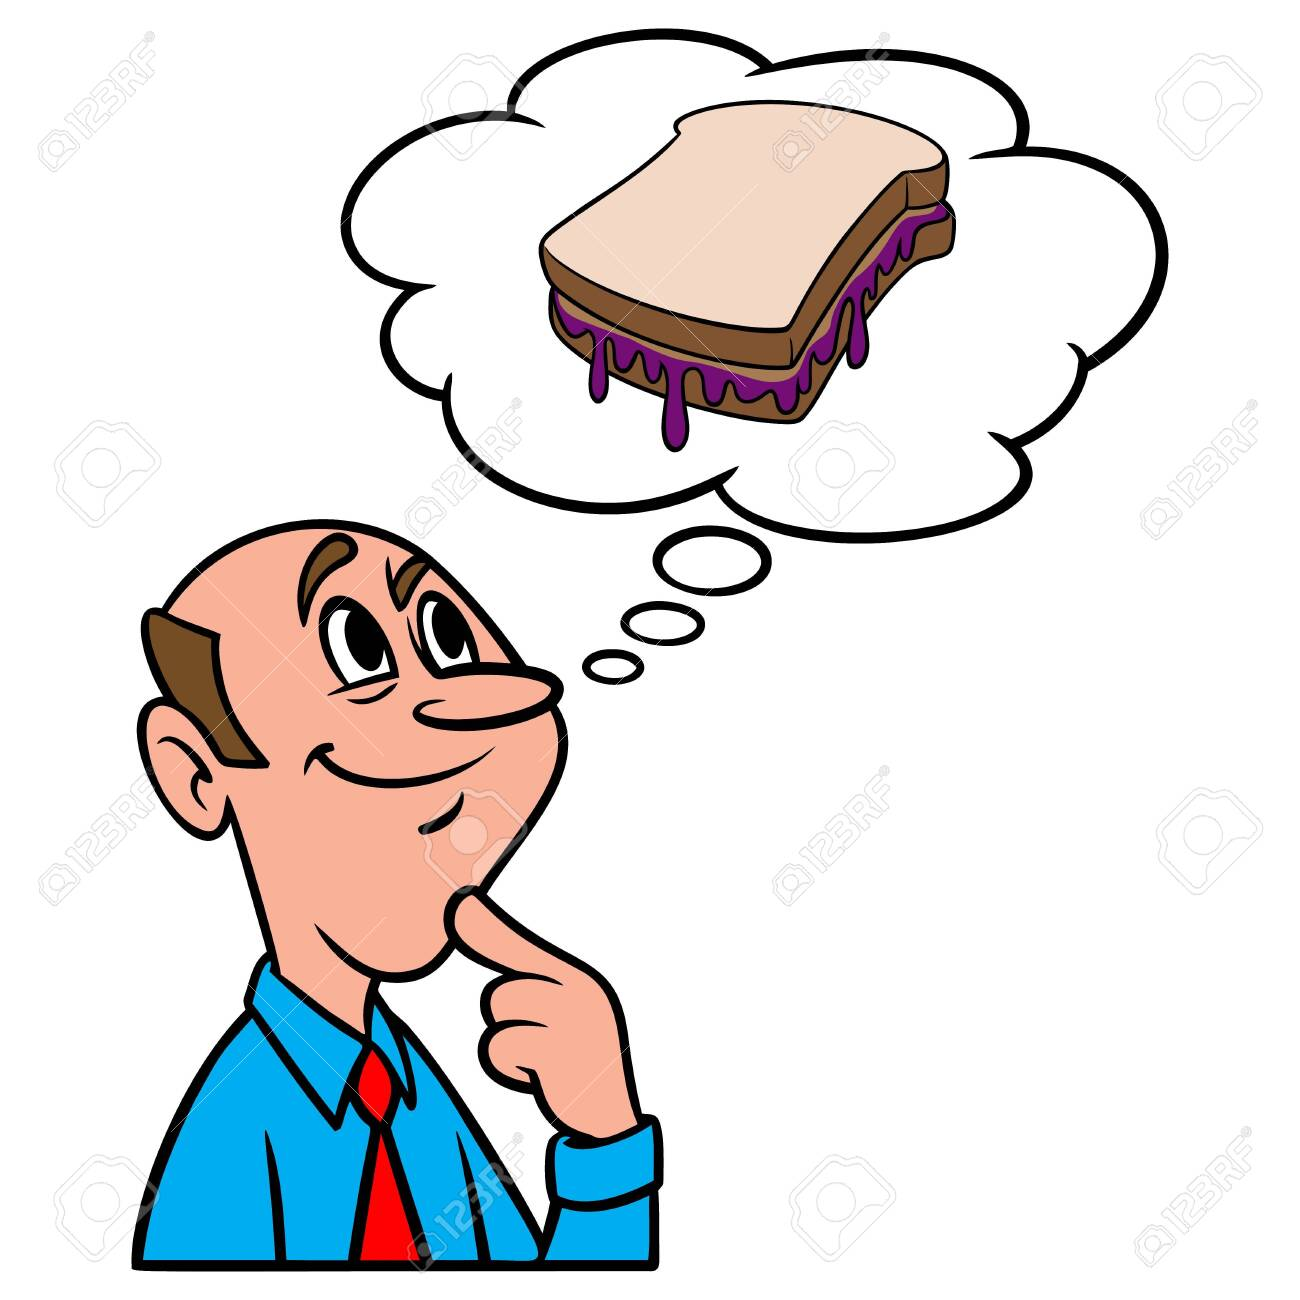 thinking about peanut butter and jelly a cartoon illustration royalty free cliparts vectors and stock illustration image 147134263 thinking about peanut butter and jelly a cartoon illustration